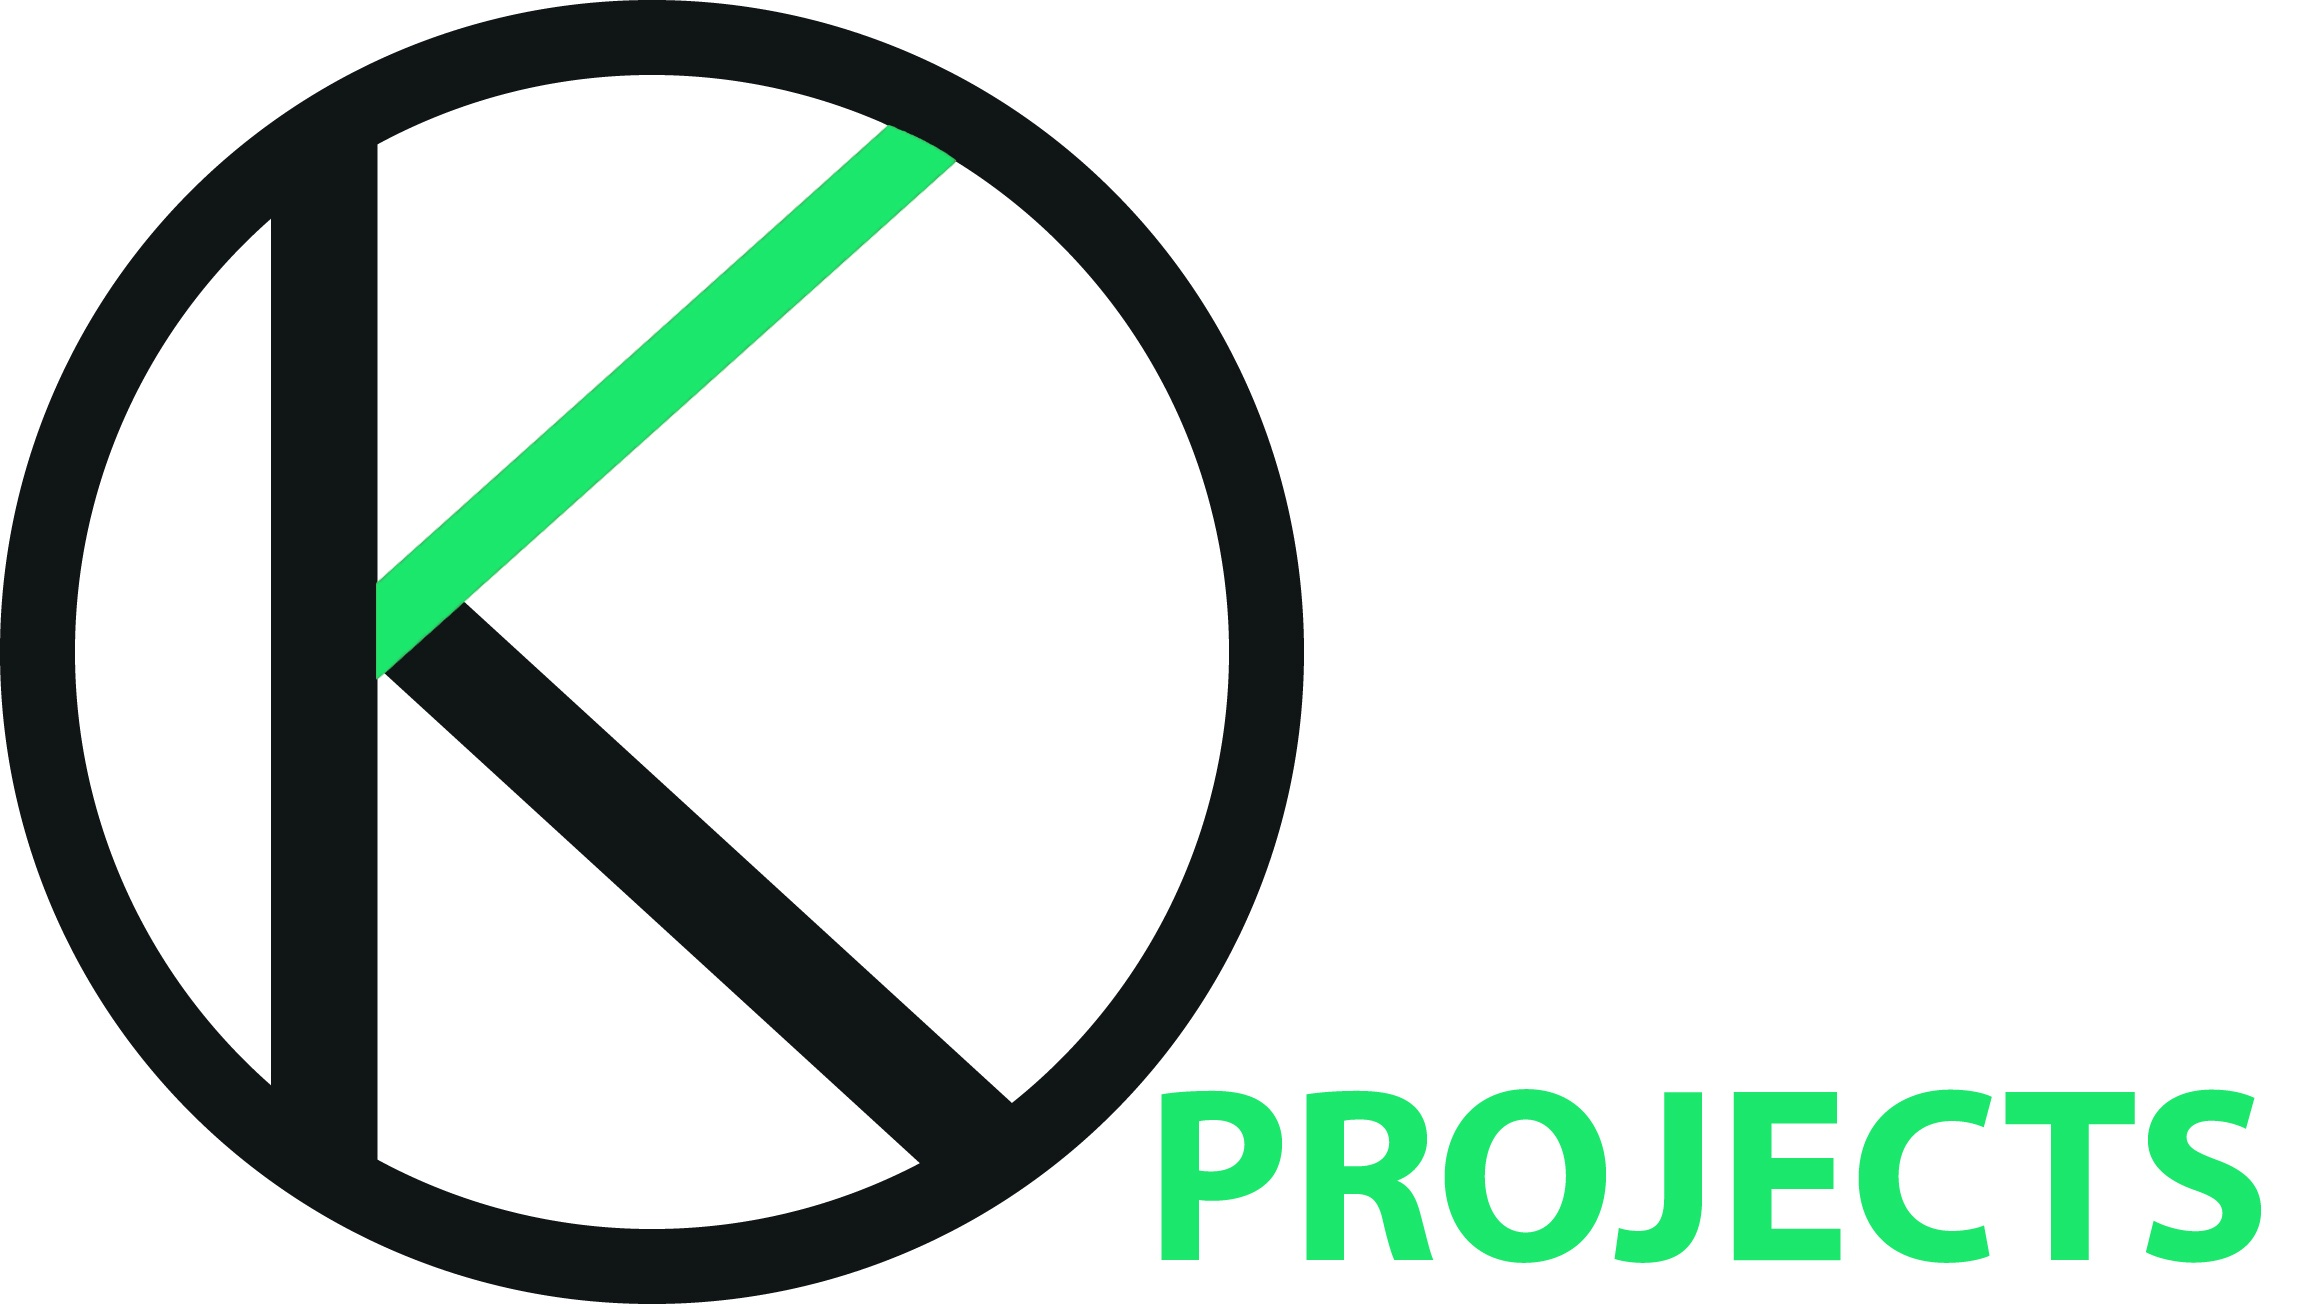 Kune Projects